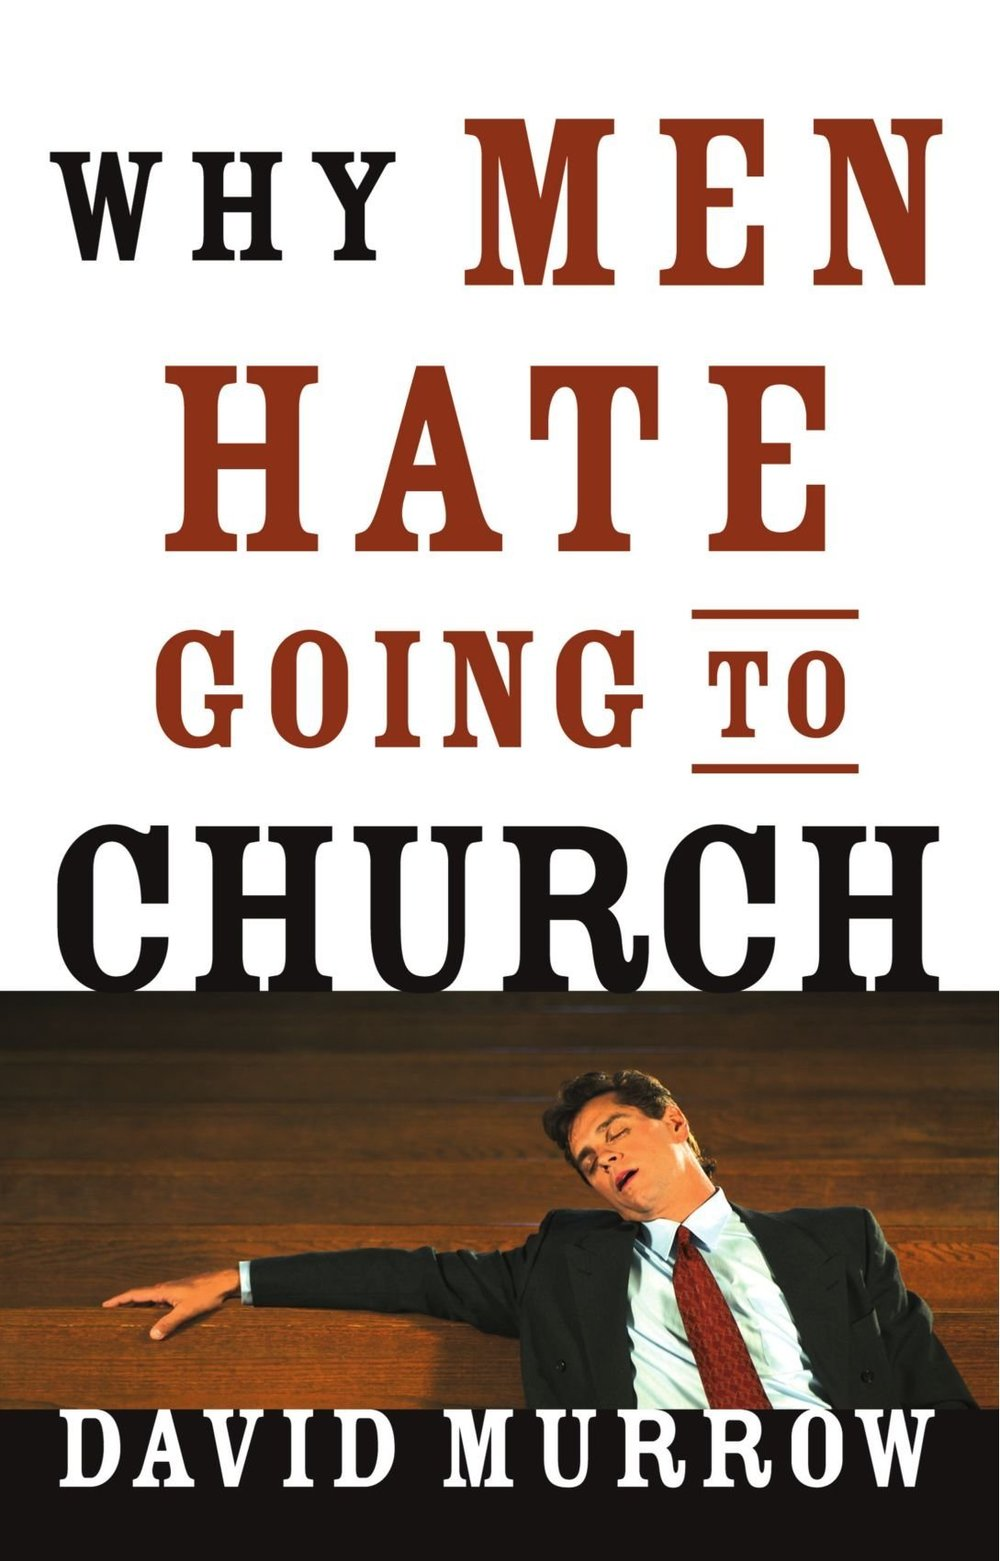 WHY MEN HATE GOING TO CHURCH - By: David Murrow